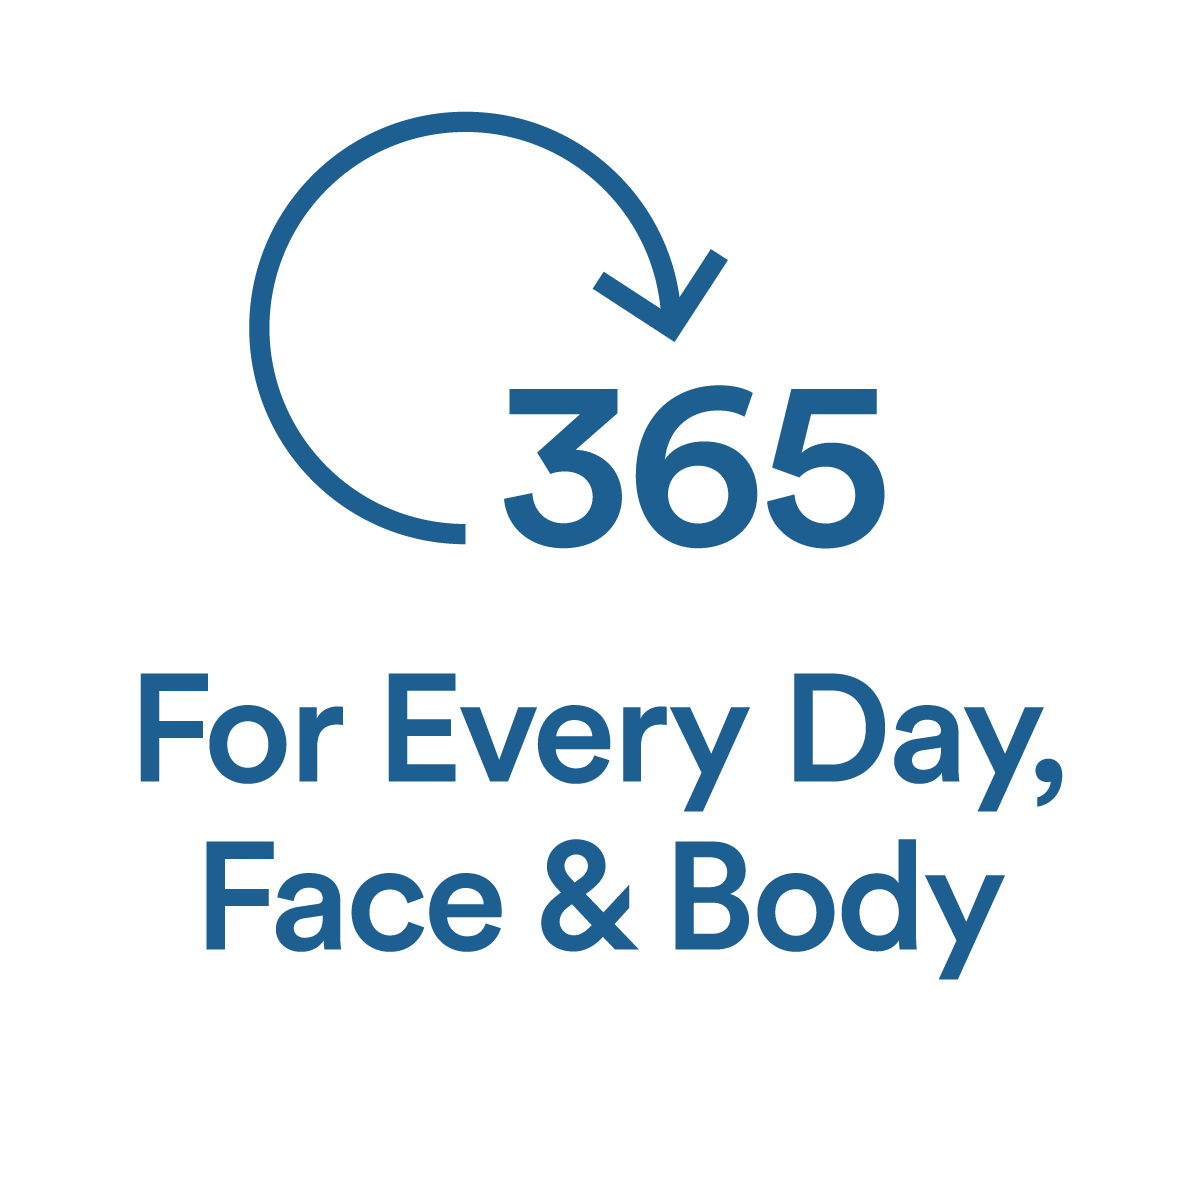 For every day, face and body